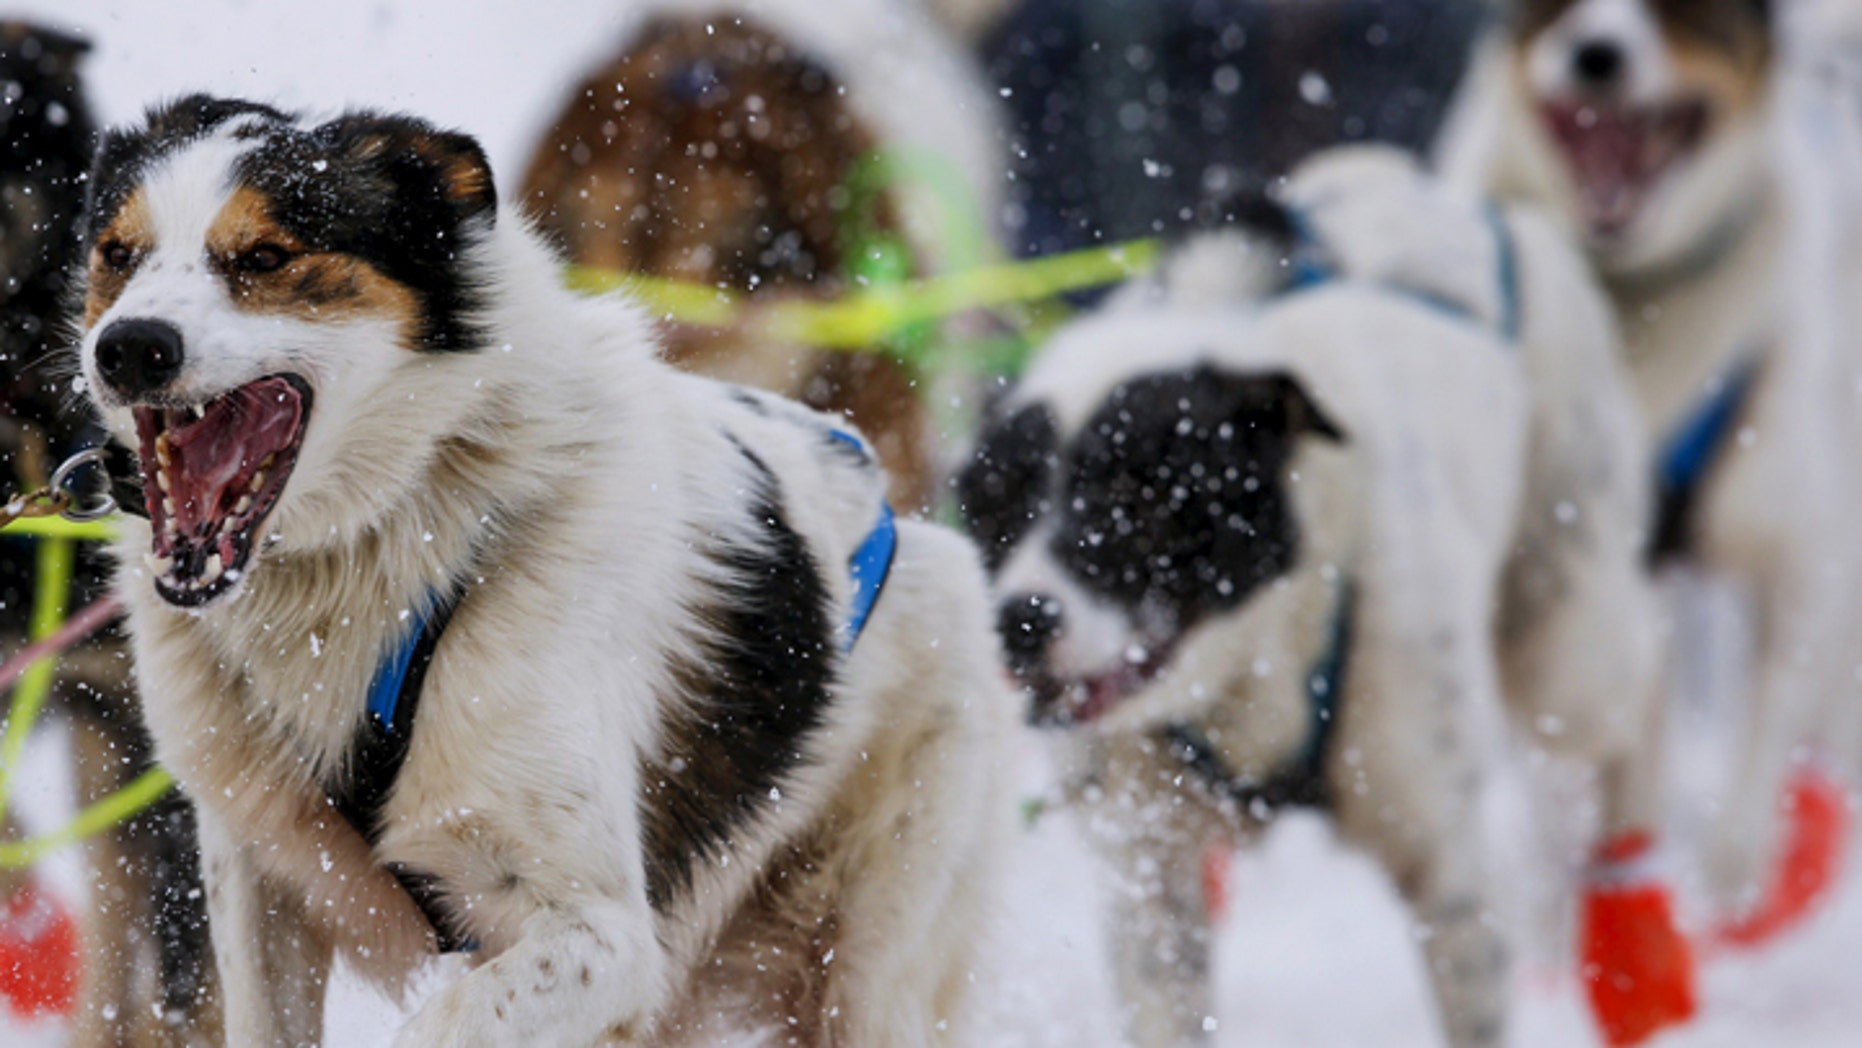 A team heads out at the ceremonial start of the Iditarod Trail Sled Dog Race to begin their near 1,000-mile (1,600-km) journey through Alaska's frigid wilderness in downtown Anchorage, Alaska March 5, 2016. REUTERS/Nathaniel Wilder - GF10000335148